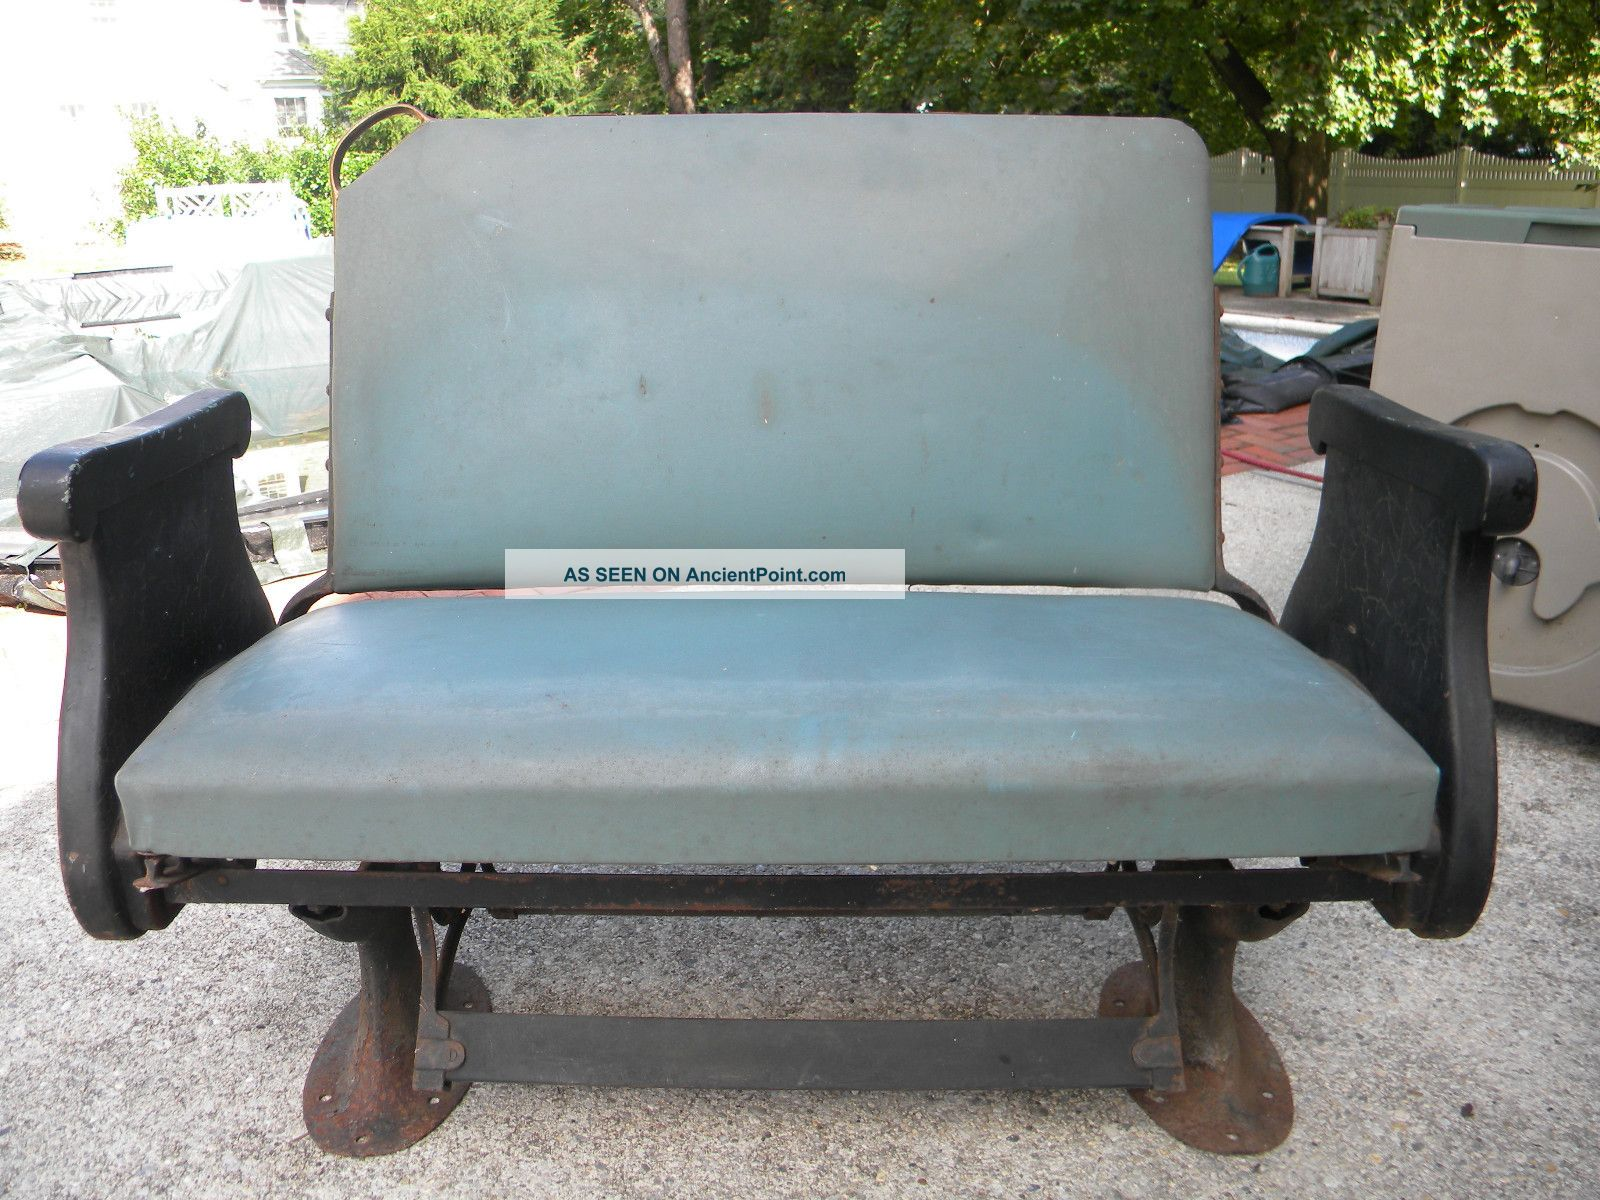 Marvelous photograph of  Pullman Passenger Railroad Car Reversible Bench Seat In Excellent Cond with #4D5D2C color and 1600x1200 pixels